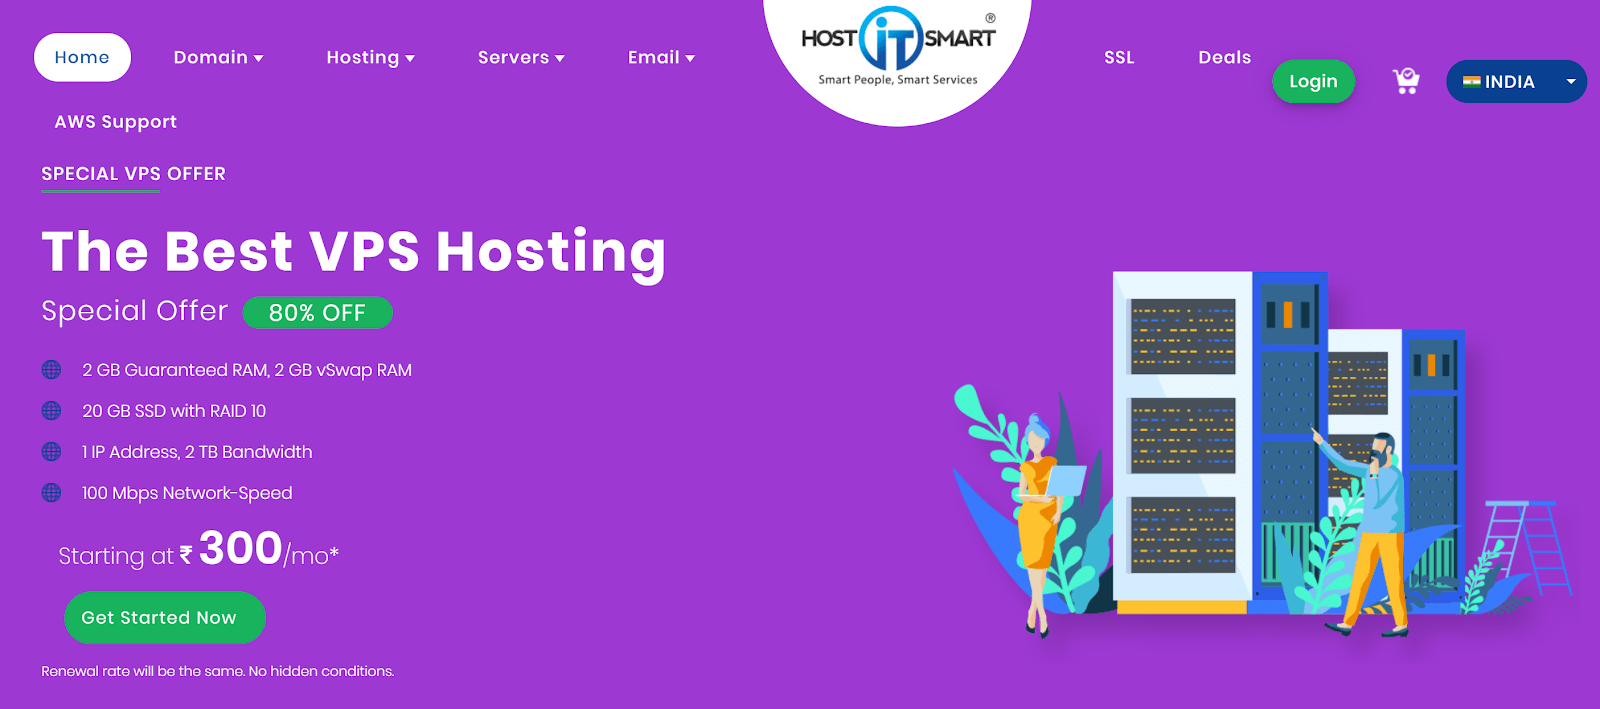 HostItSmart homepage